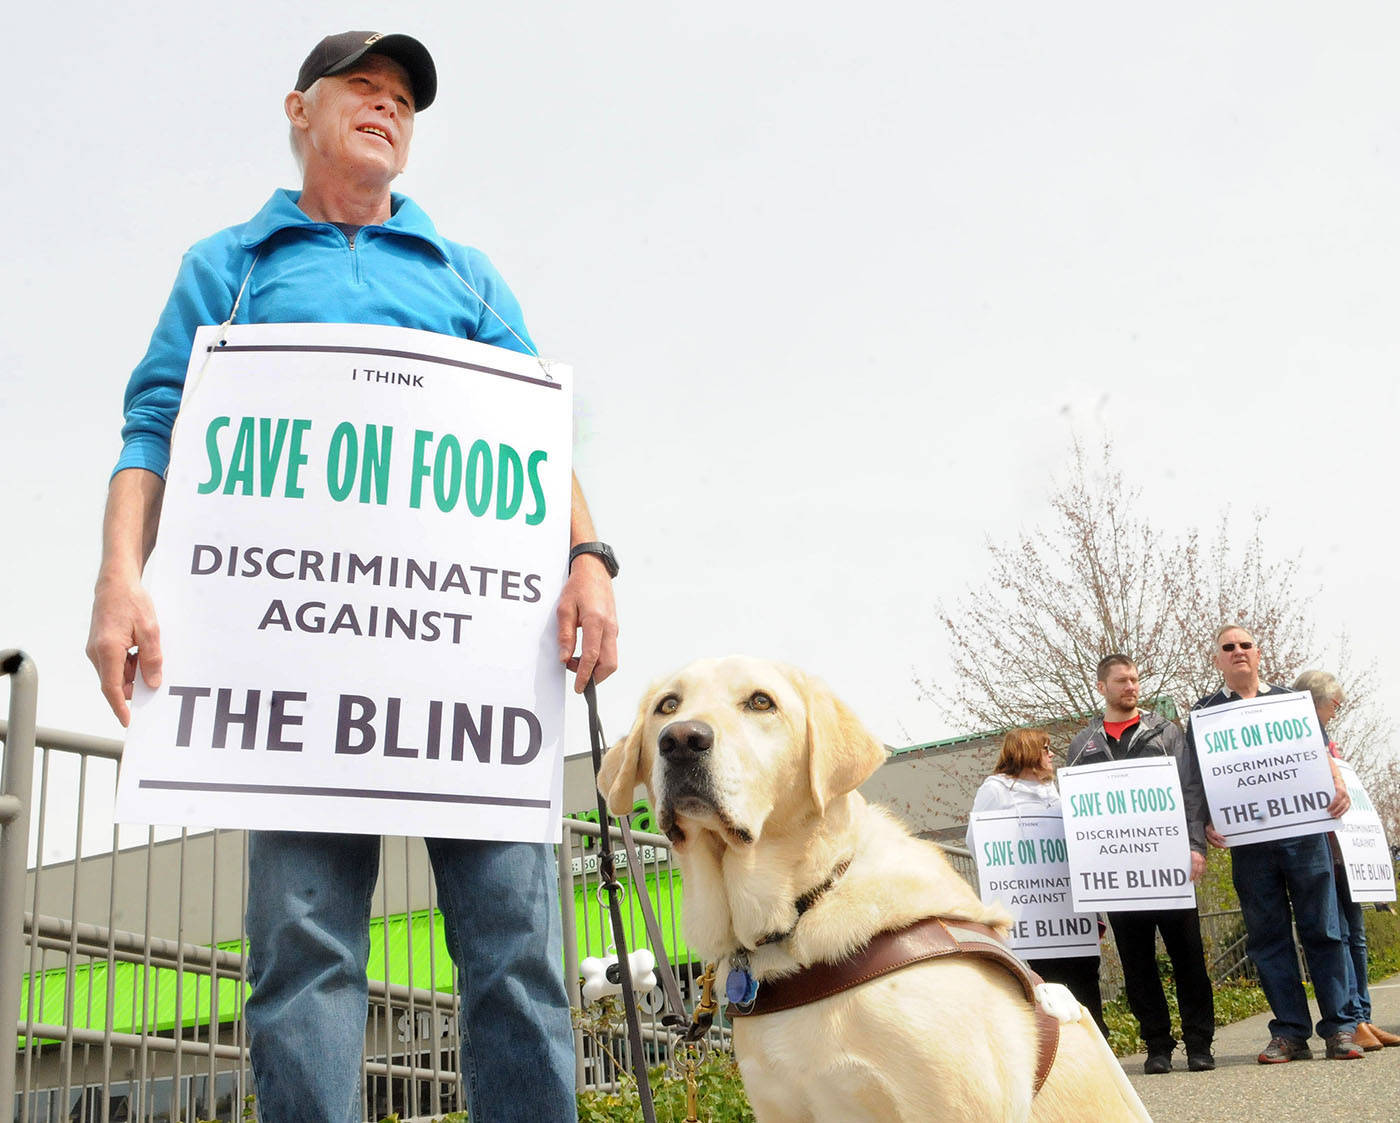 Joined by his service dog Gretel and a handful of supporters, Matt Salli picketed outside the Walnut Grove Save-On-Foods location Thursday afternoon. Troy Landreville Langley Times